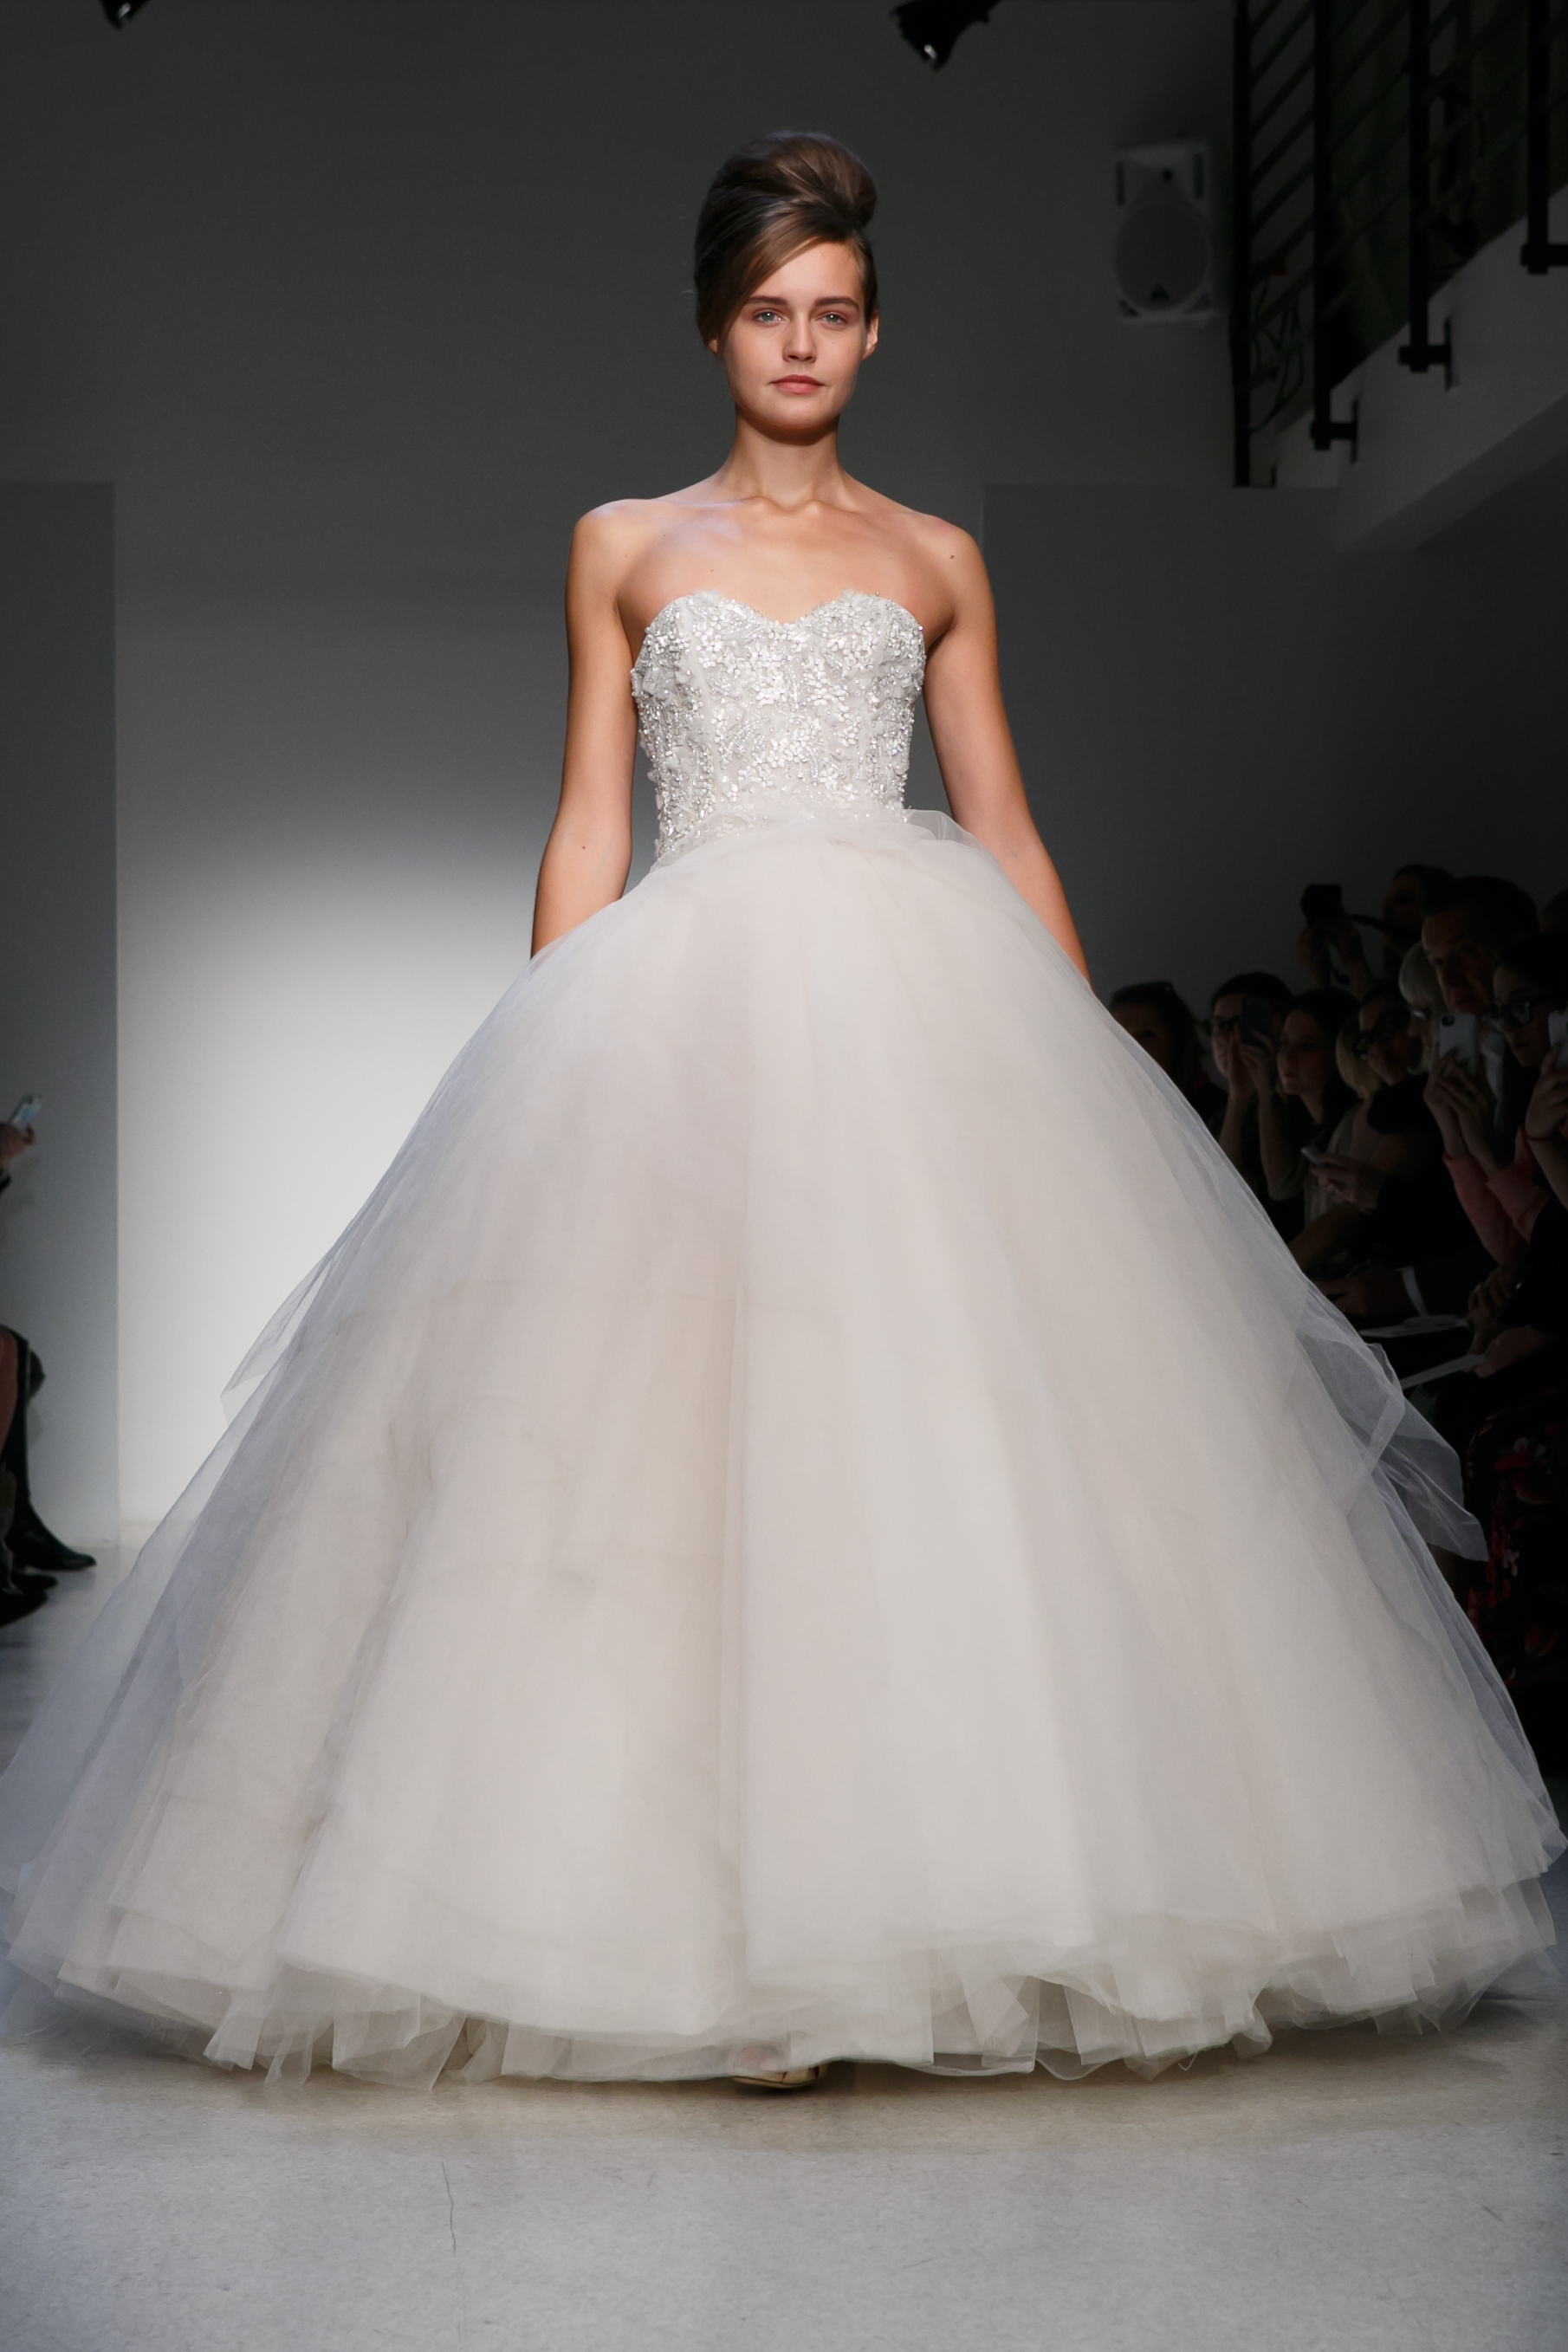 Fall-2013-wedding-dress-kenneth-pool-by-amsale-bridal-gowns-14.original